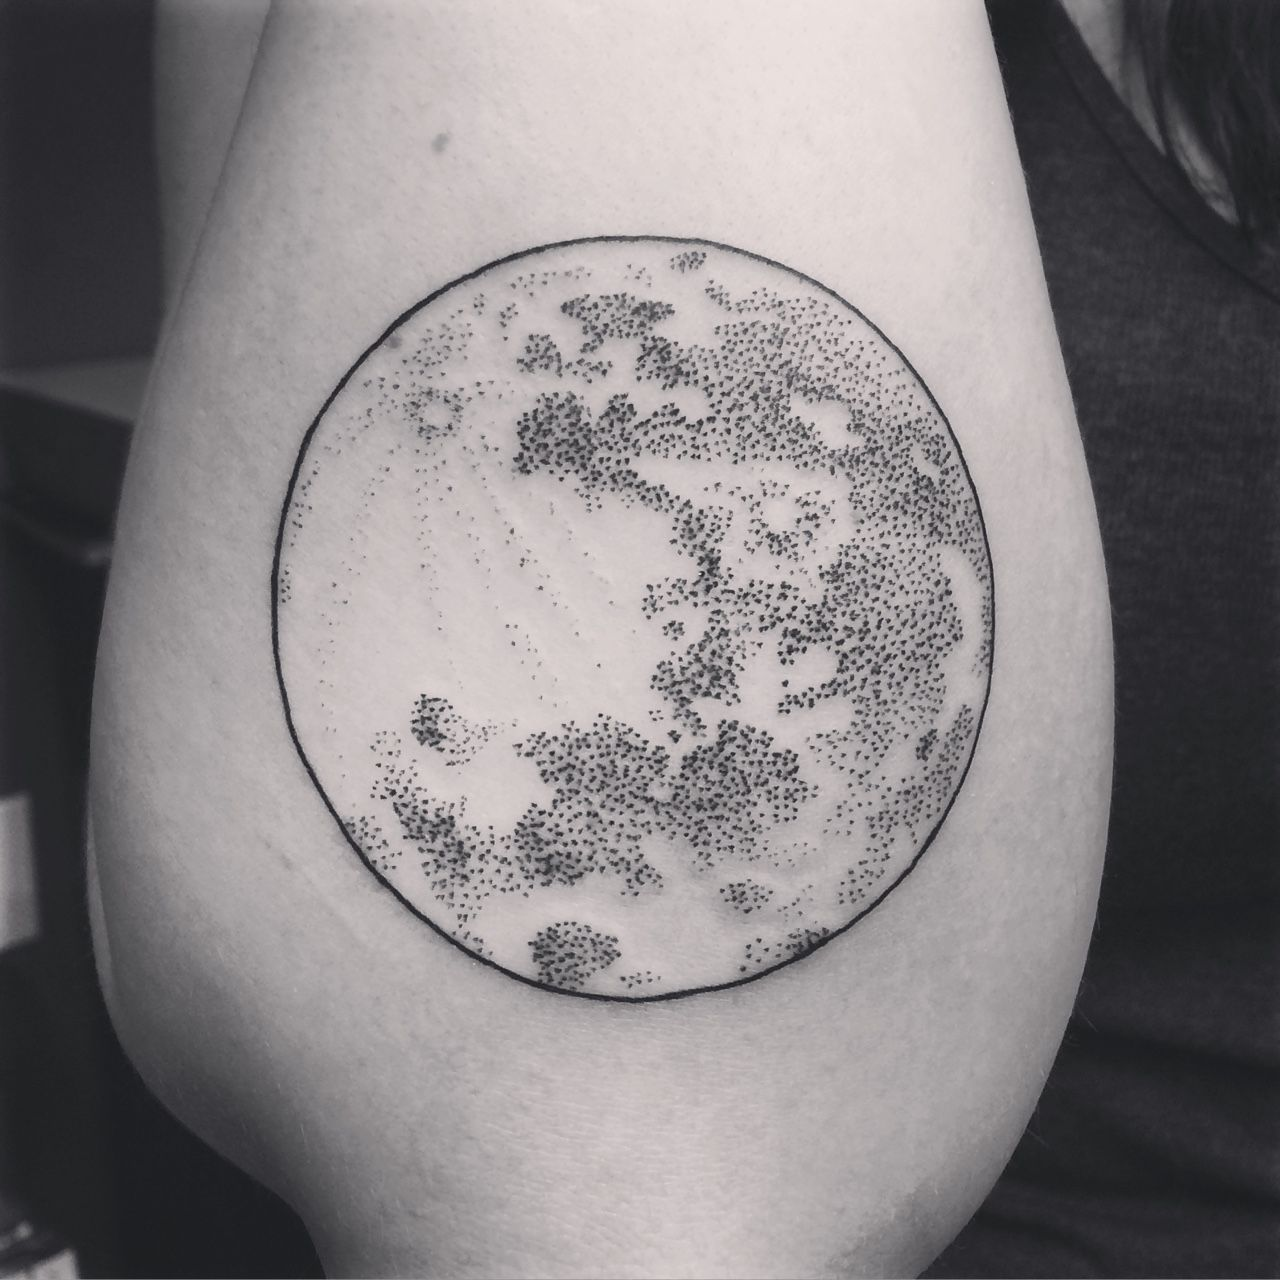 Tattoo Designs Moon: Black And Grey Moon Tattoos - Google Search